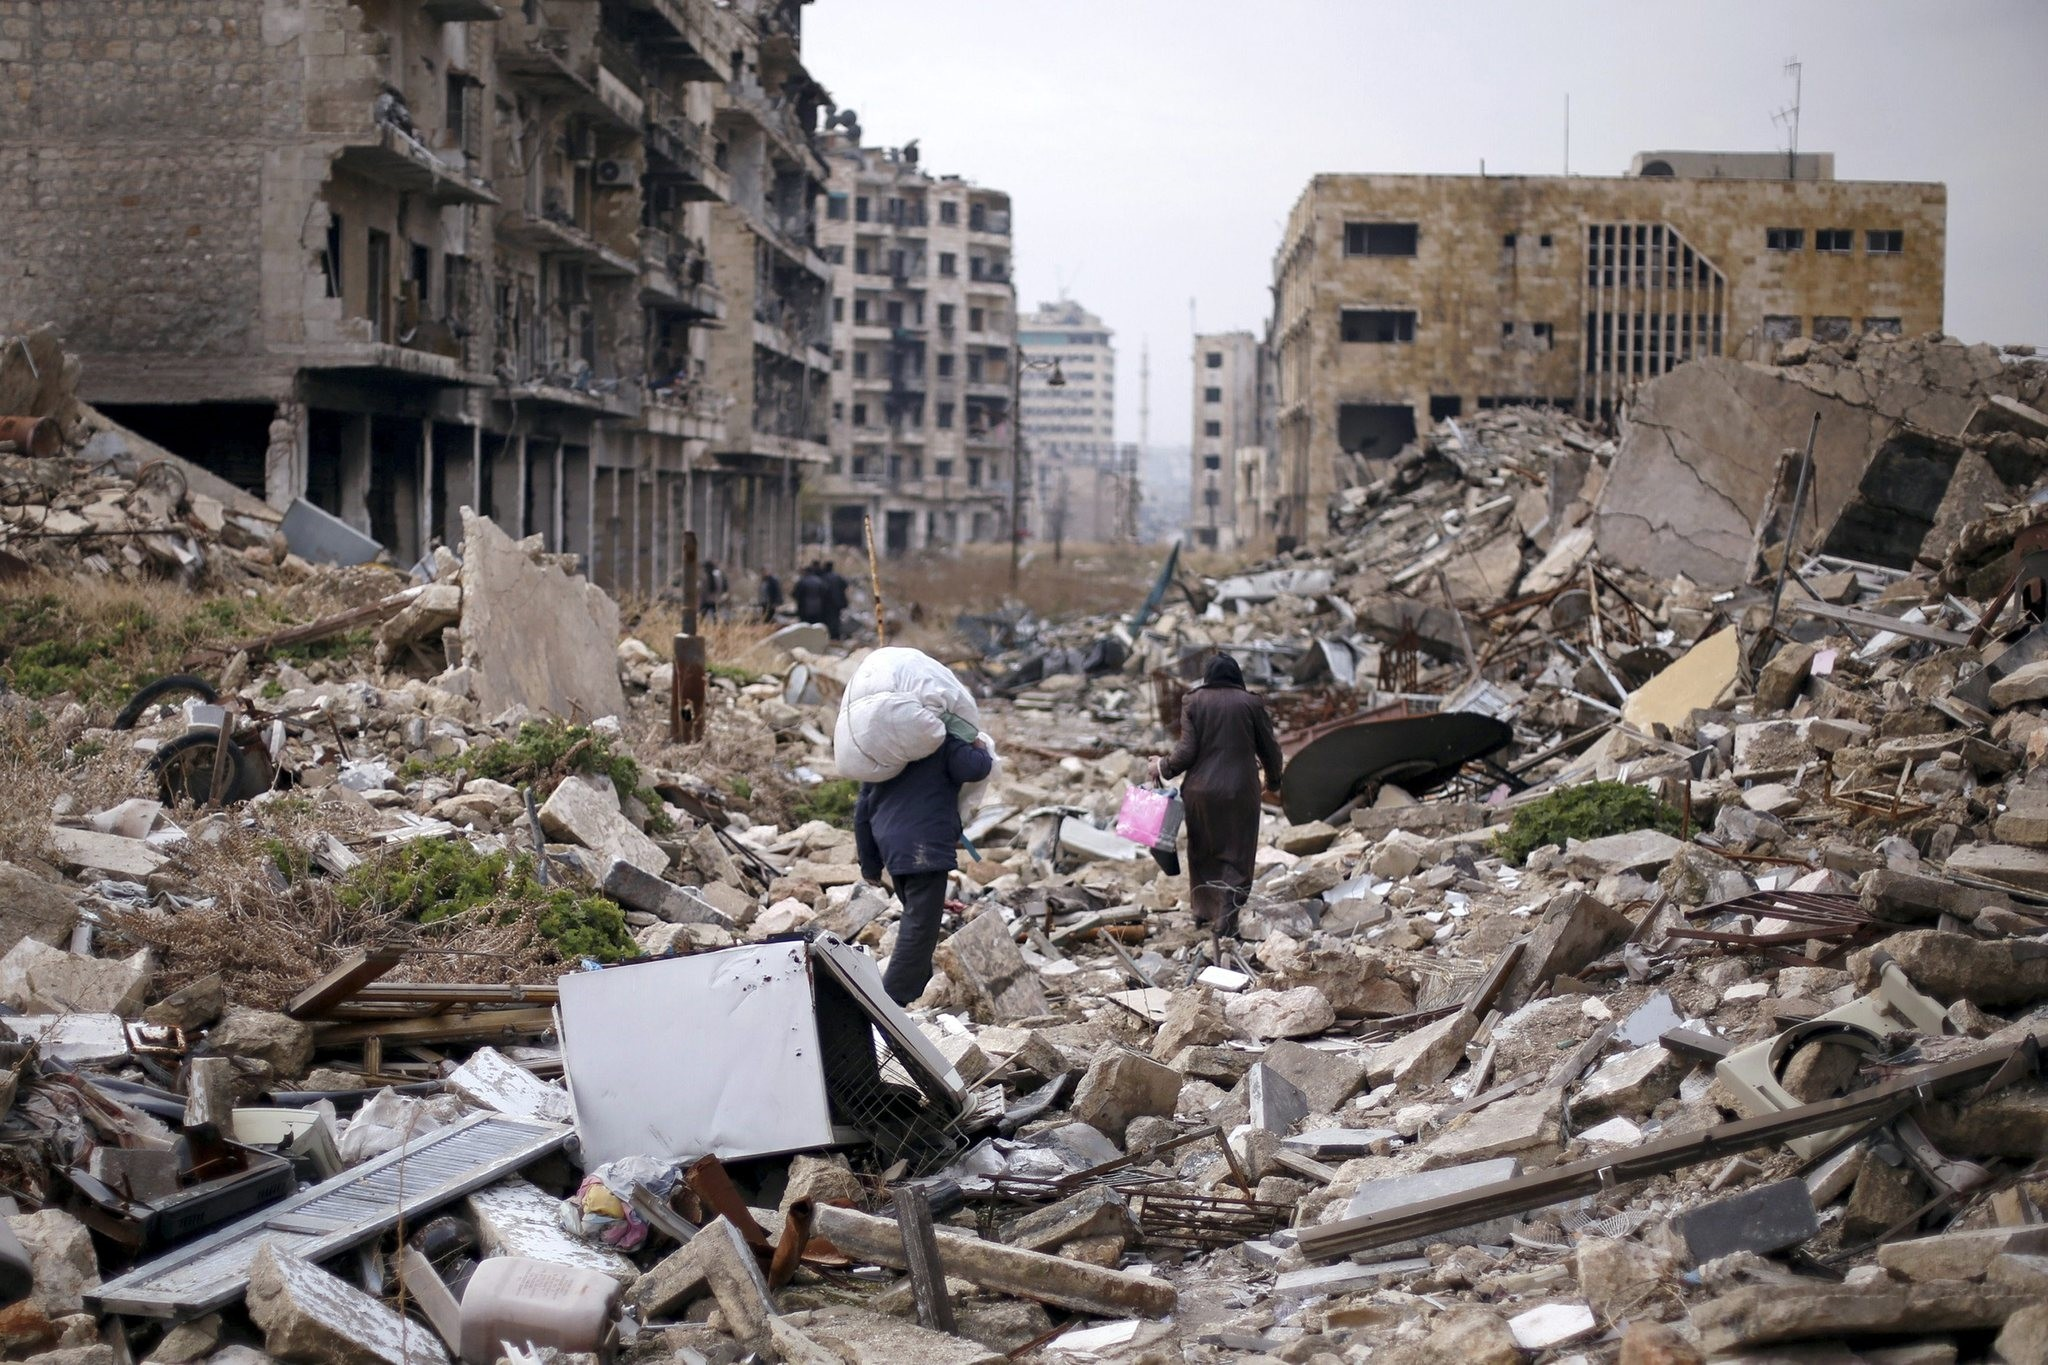 People walk amid the rubble as they carry belongings that they collected from their houses in the regime controlled area of Aleppo, Syria December 17, 2016. (Reuters Photo)